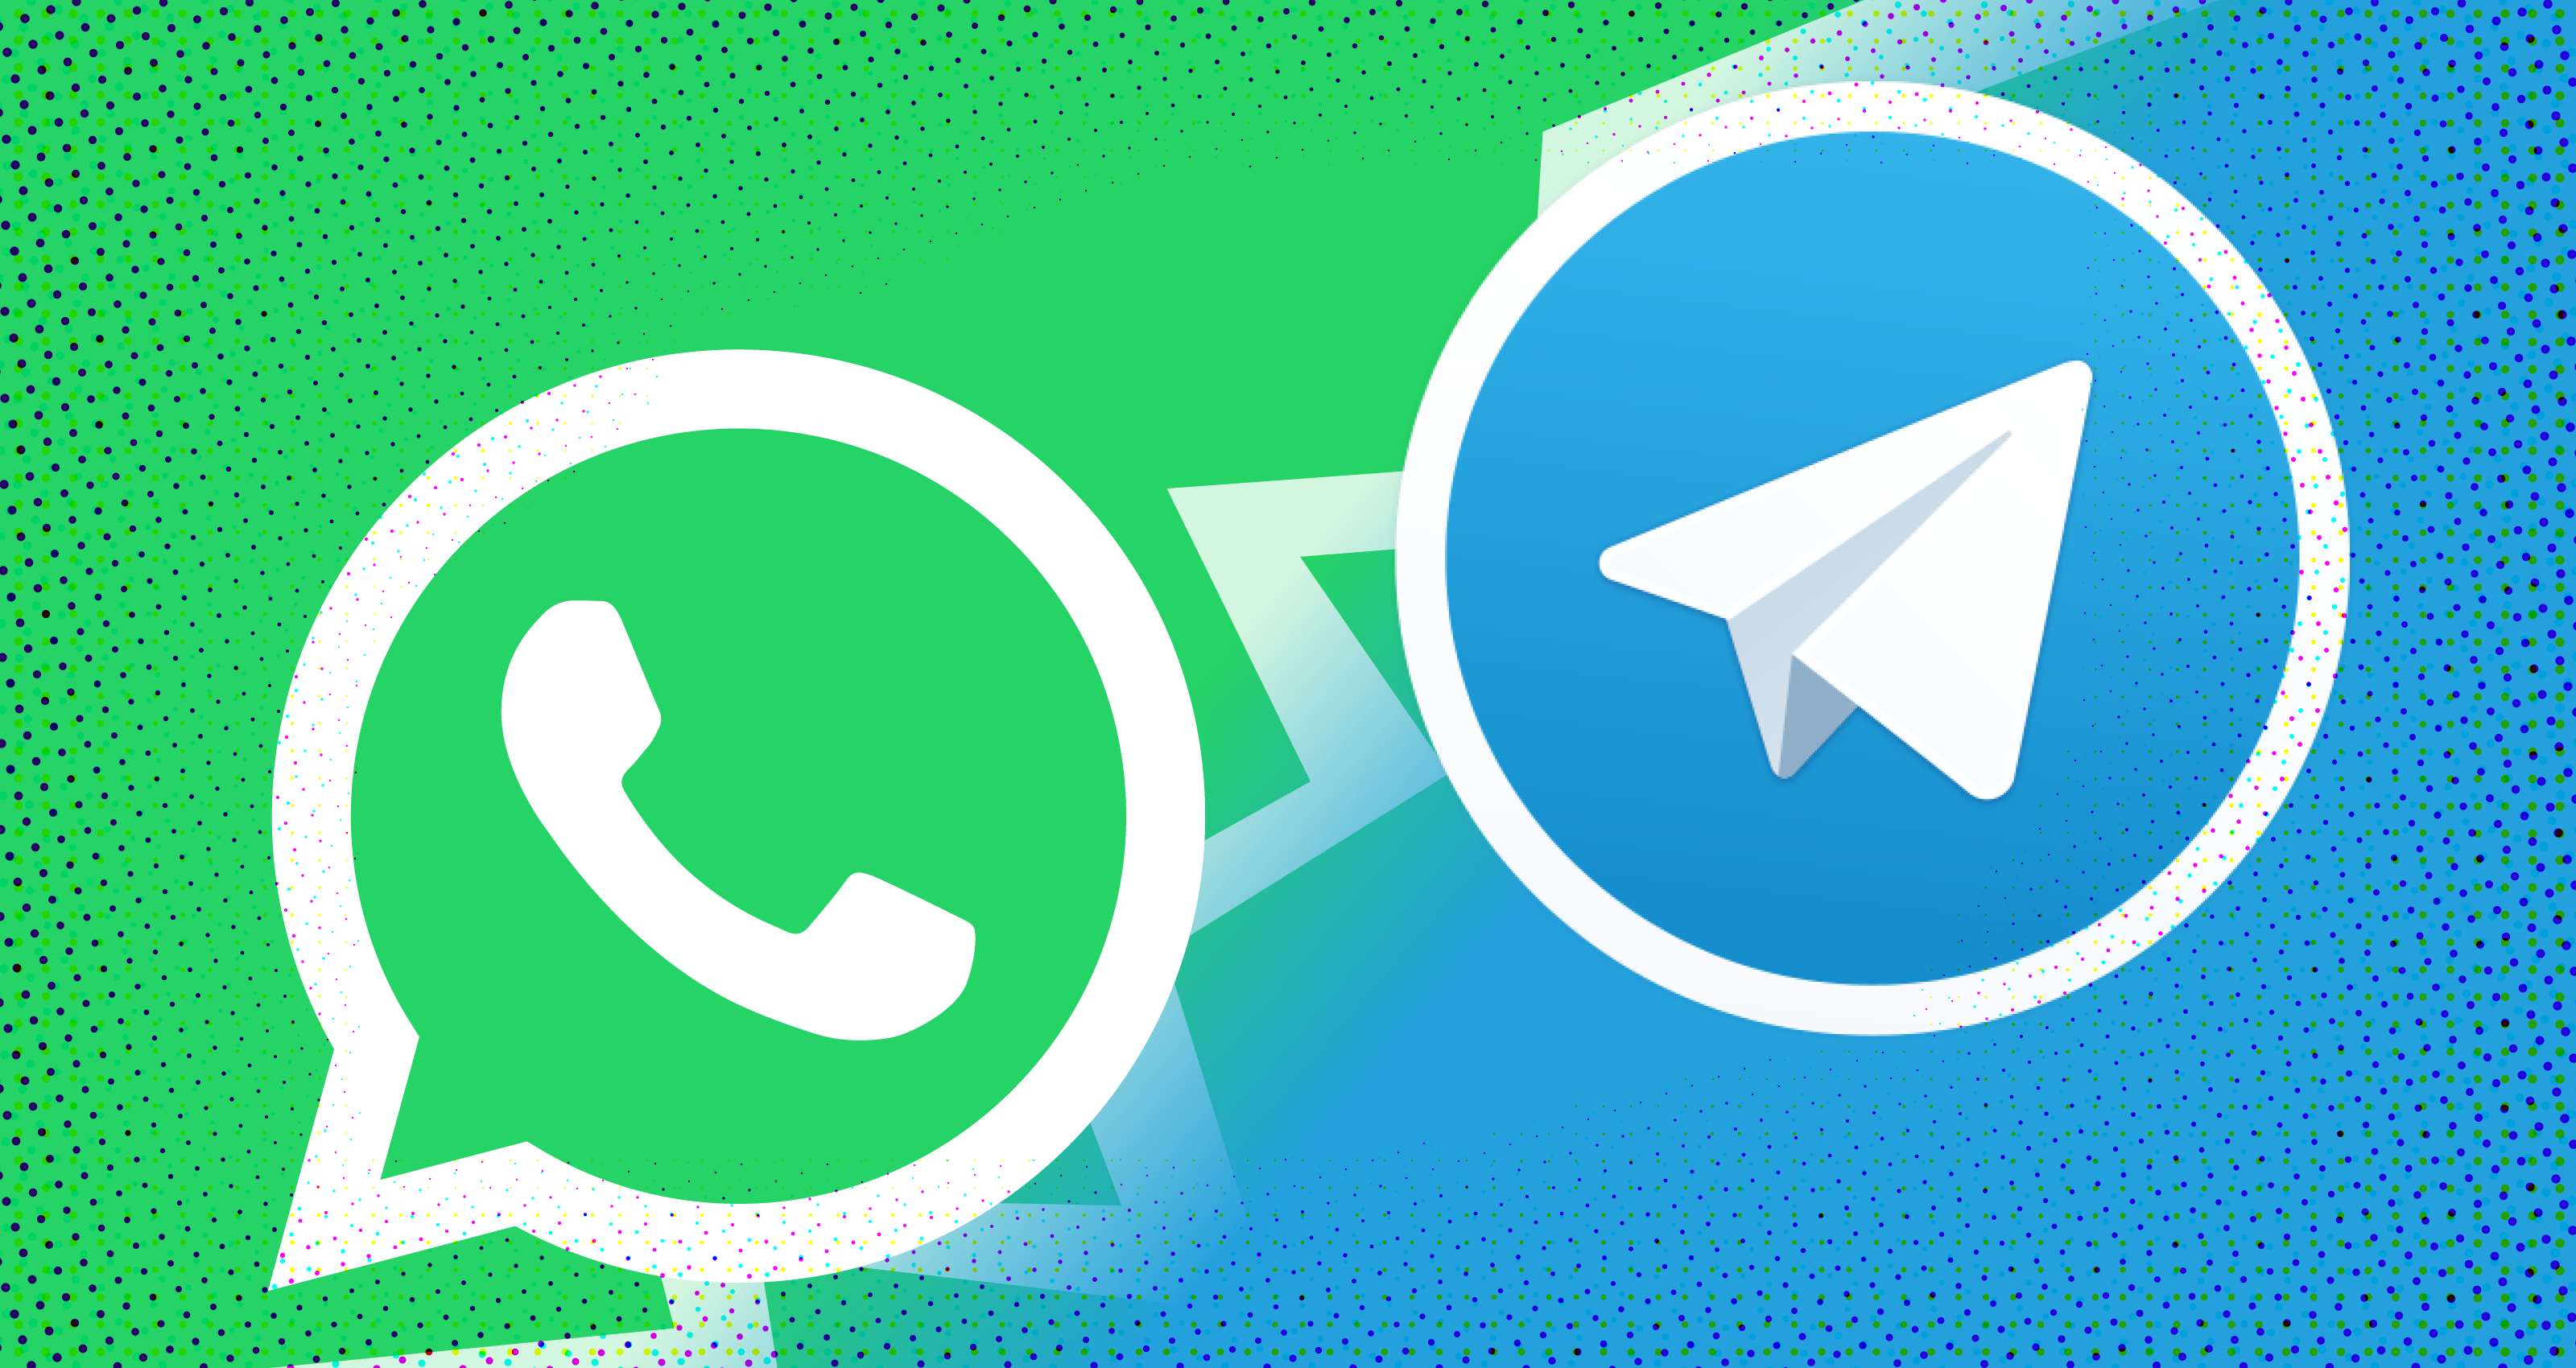 WhatsApp rolls out new group chat features